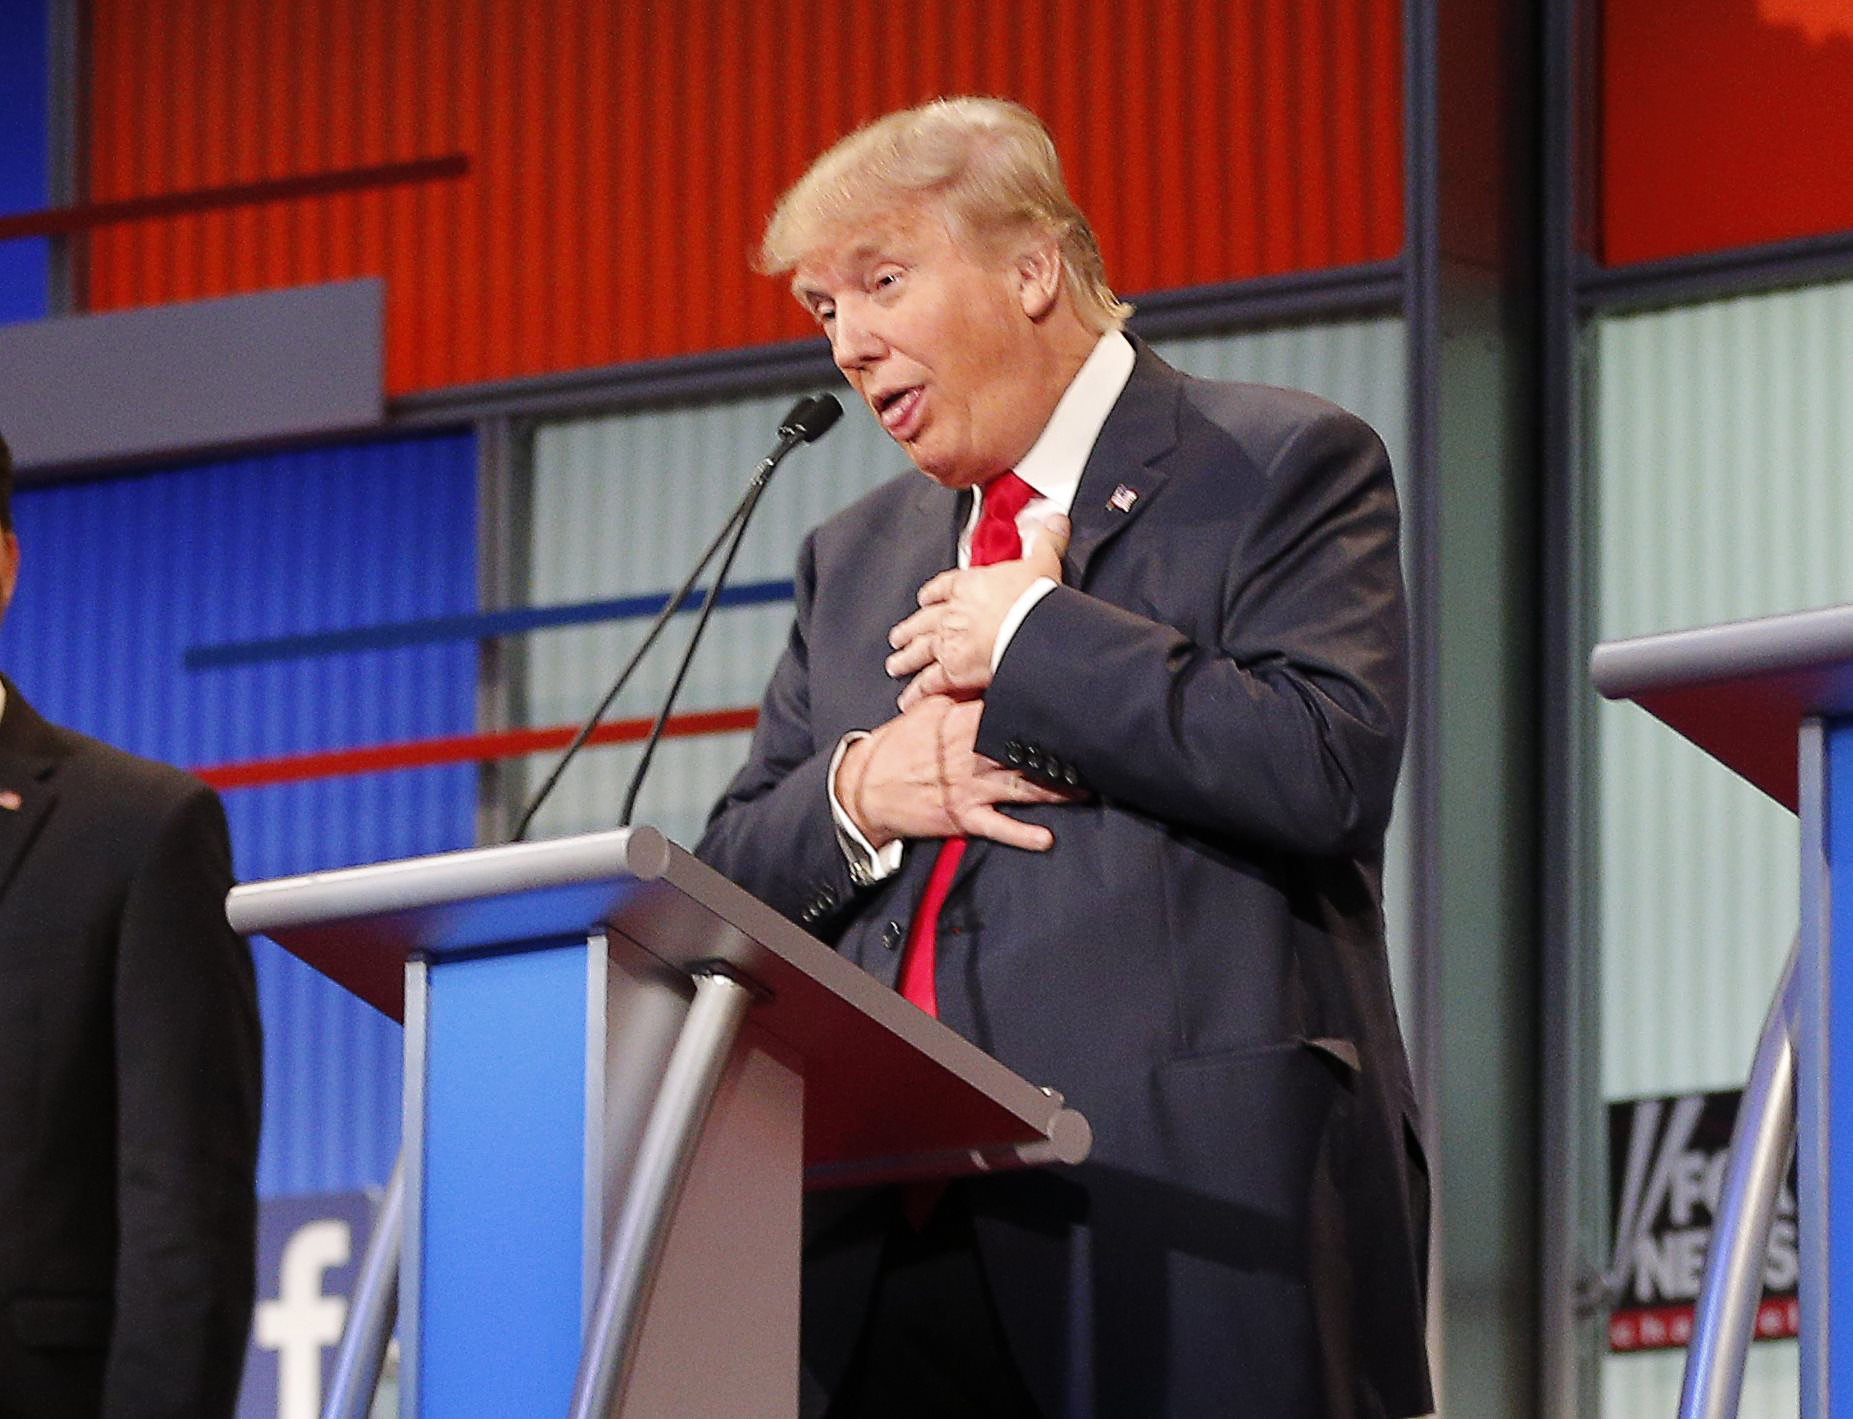 Republican 2016 U.S. presidential candidate and businessman Donald Trump reacts near the end of the first official Republican presidential candidates debate of the 2016 U.S. presidential campaign in Cleveland